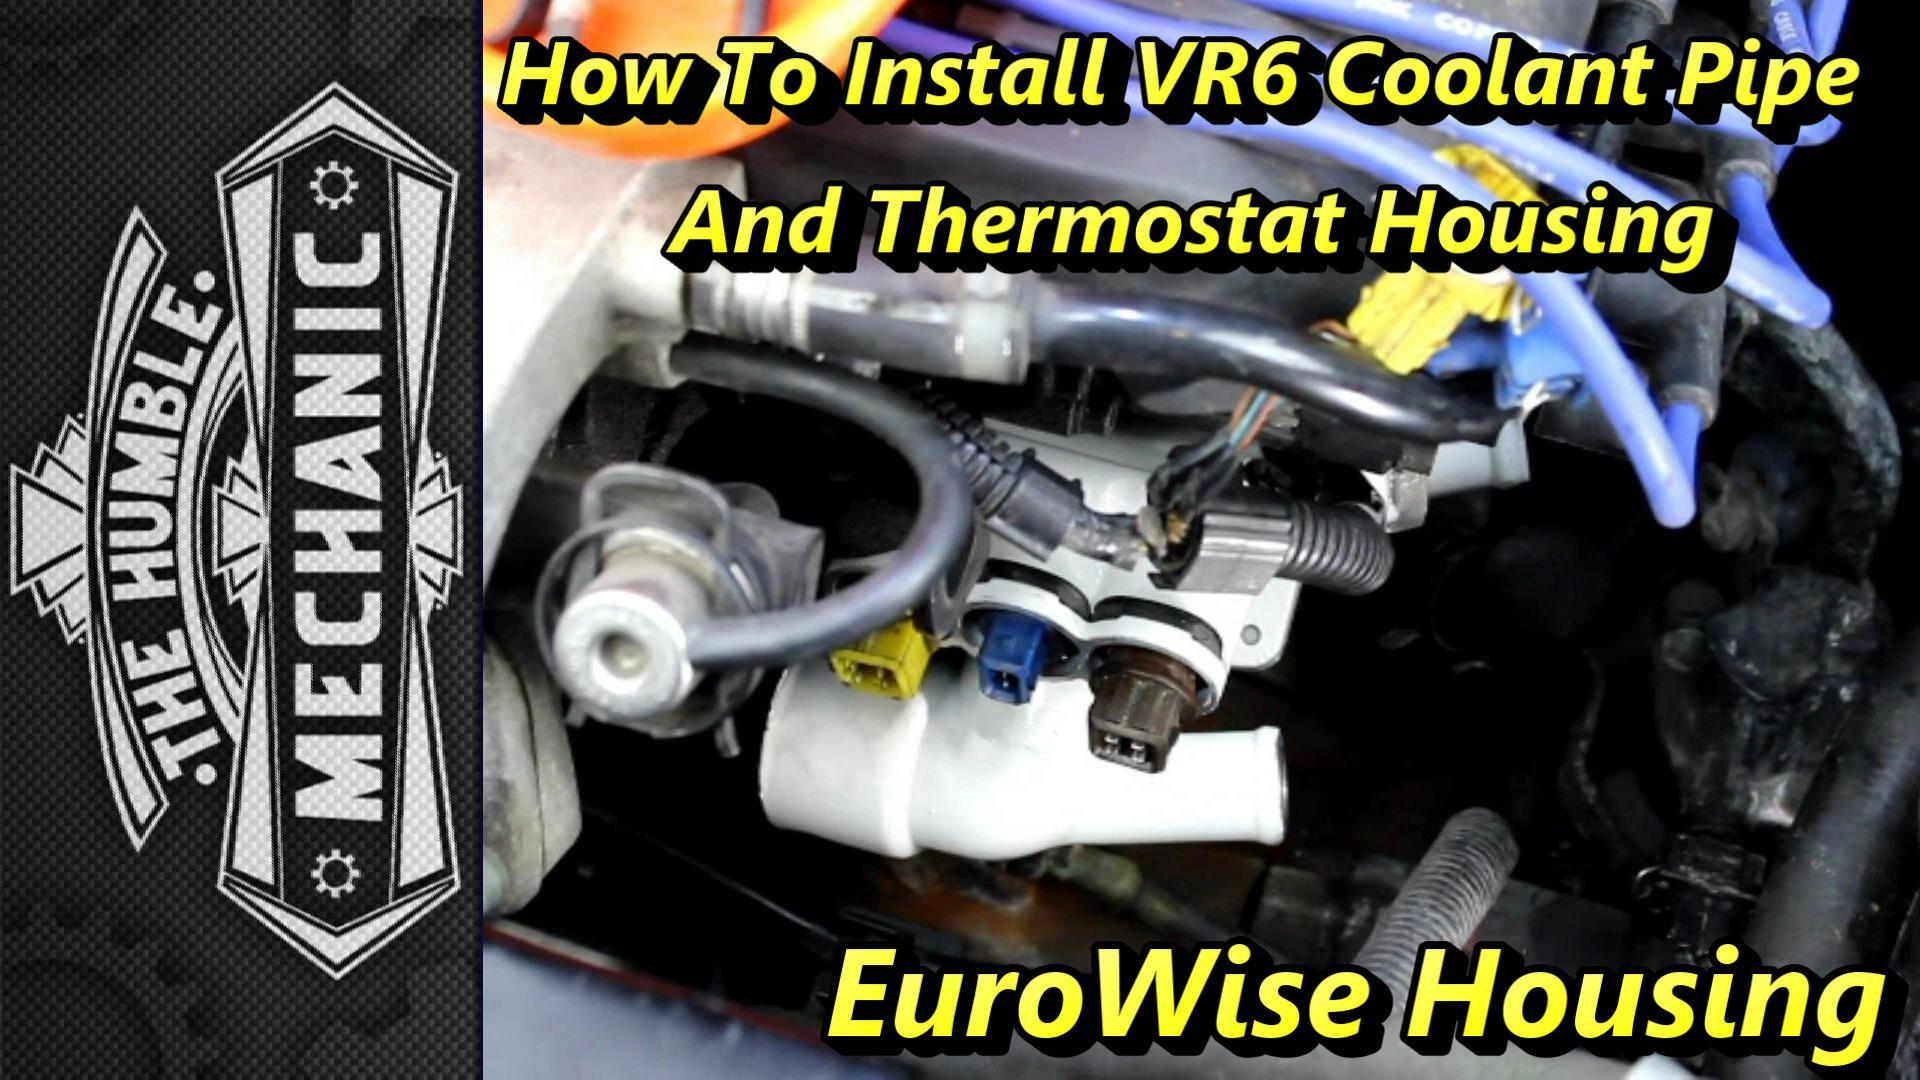 Vr6 Coolant Pipe And Thermostat Housing Diy Humble Mechanic